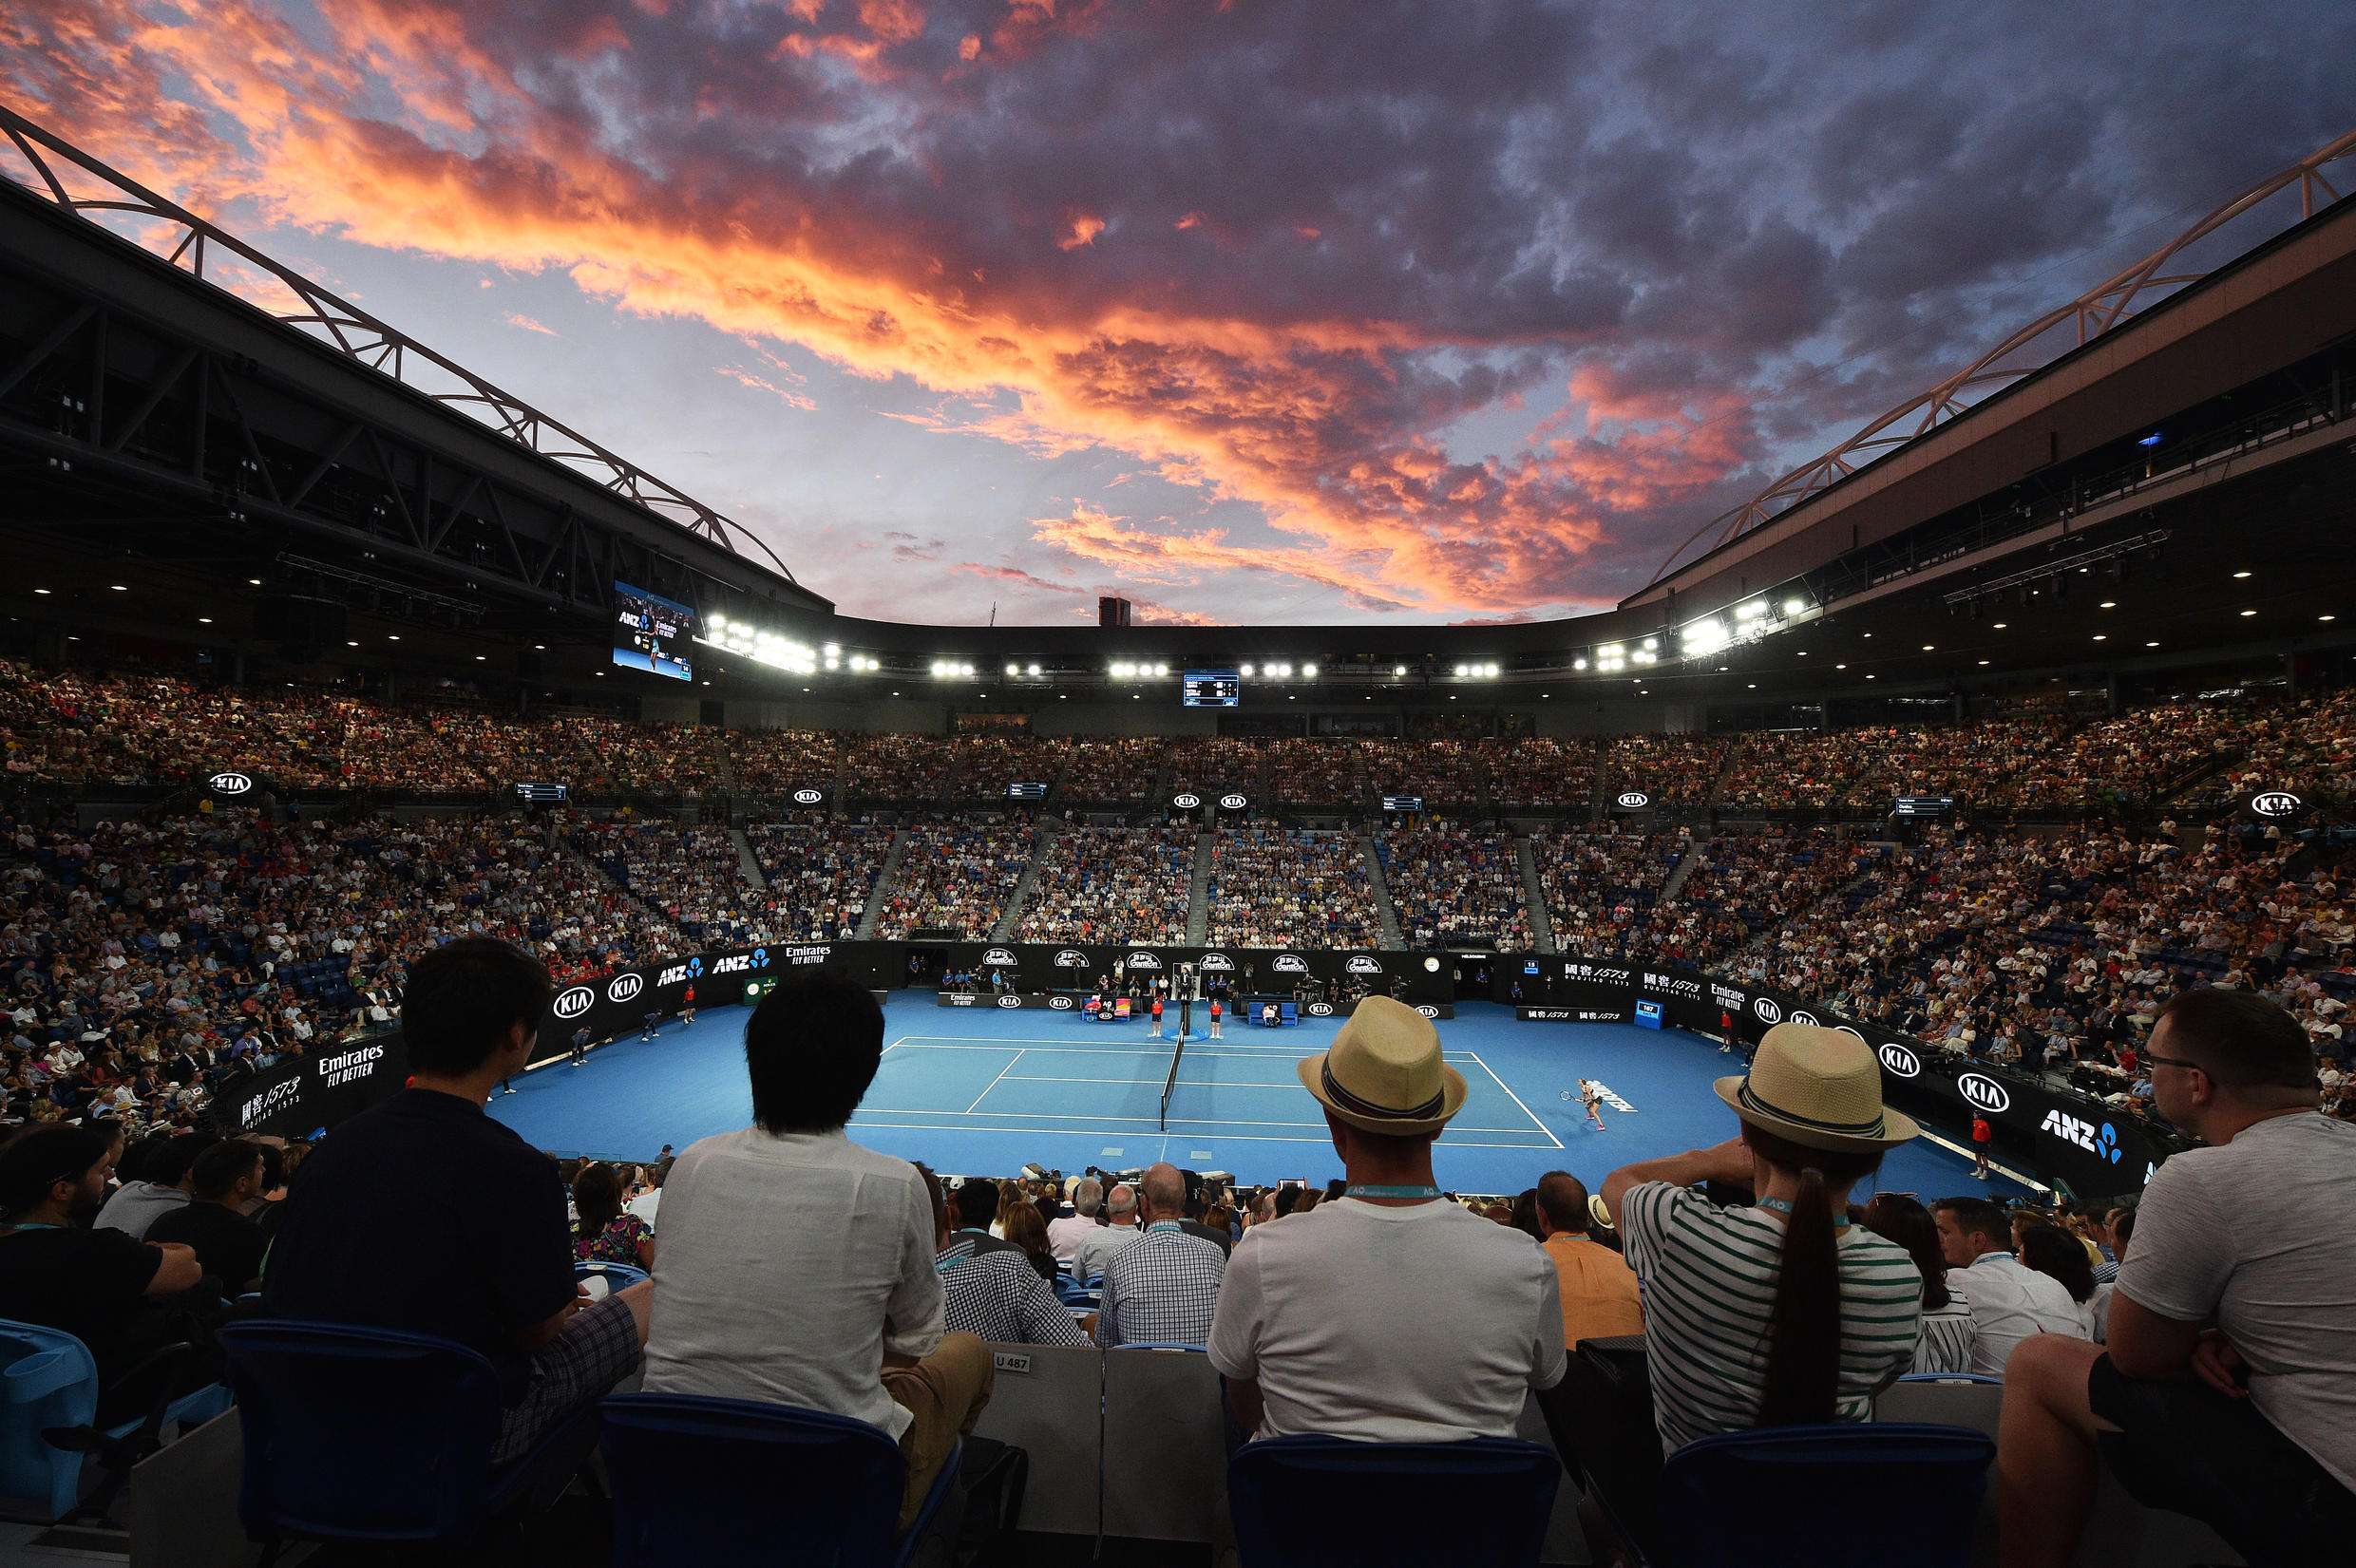 Up to 30,000 fans will be allowed to watch the Australian Open daily